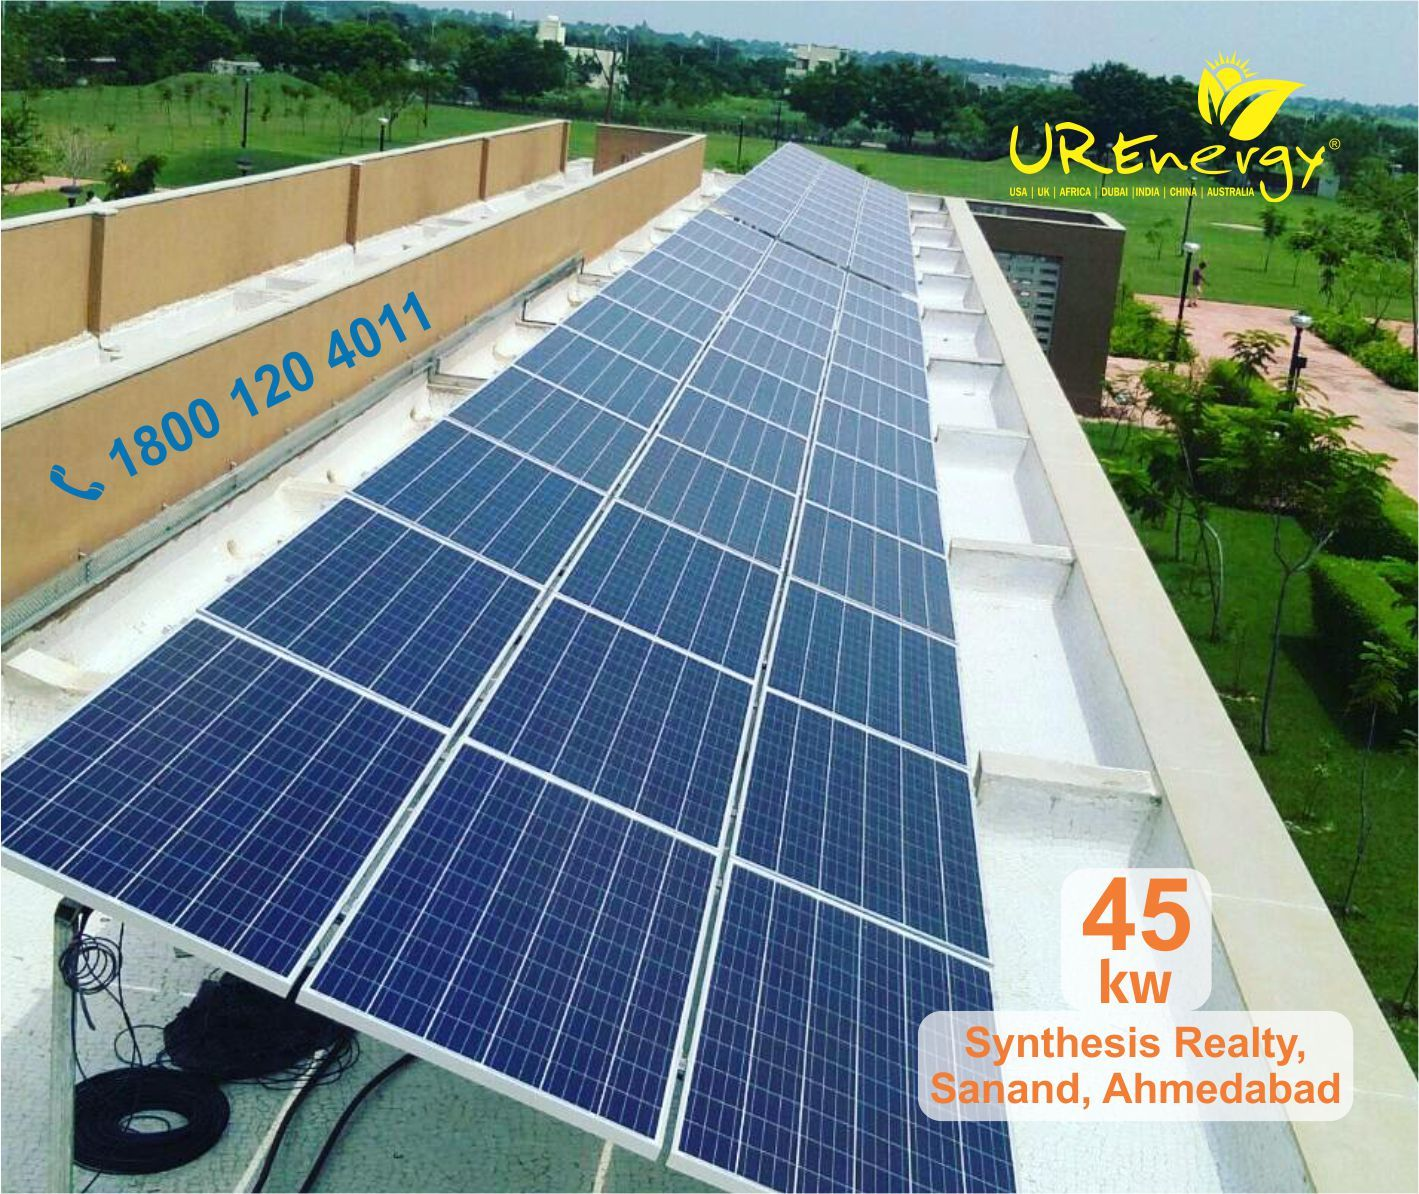 Rooftop Solar Panel Inverters Water Pump Solar Epc Gujarat India U R Energy Solar Solar Panel Inverter Solar Water Pump